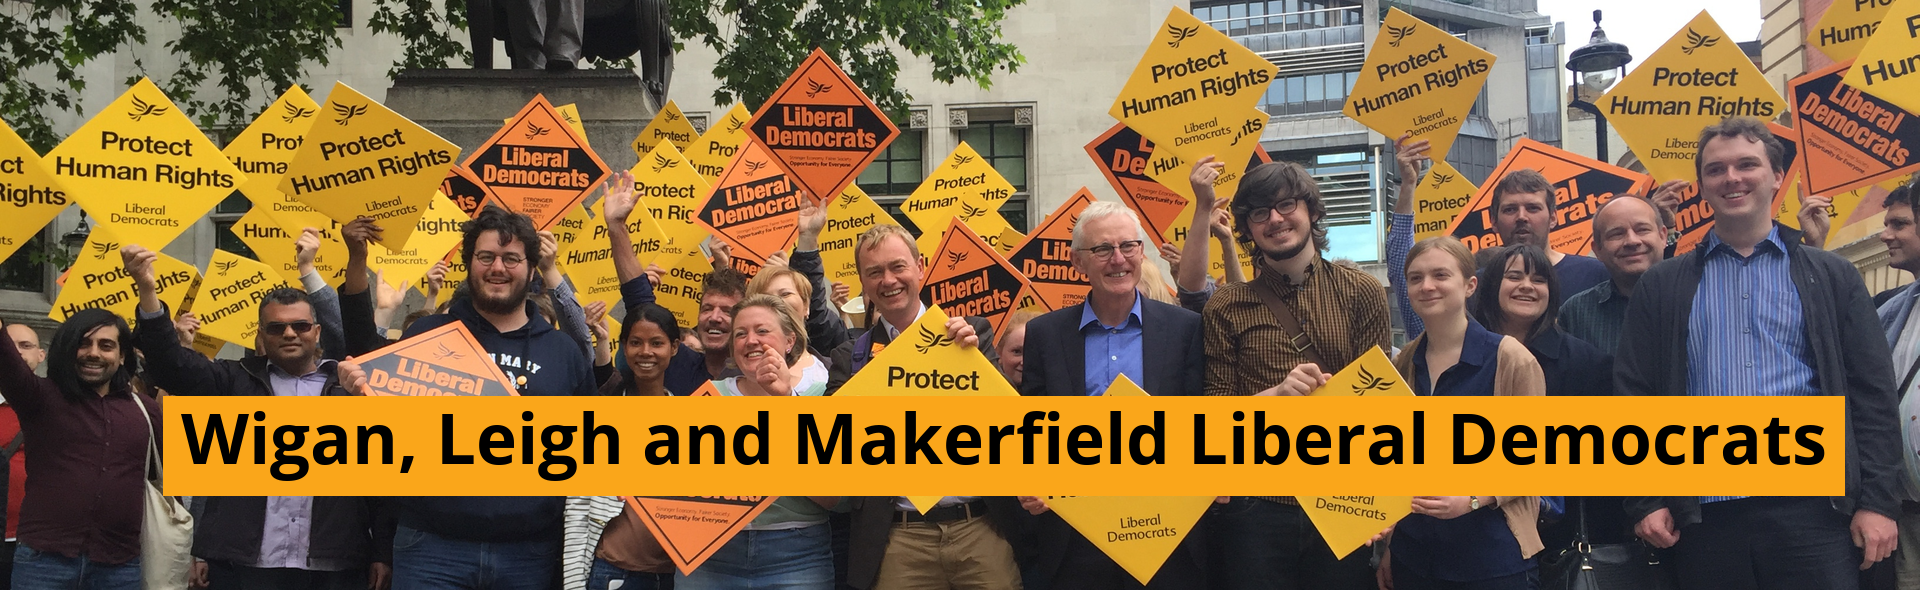 Wigan, Leigh and Makerfield Liberal Democrats